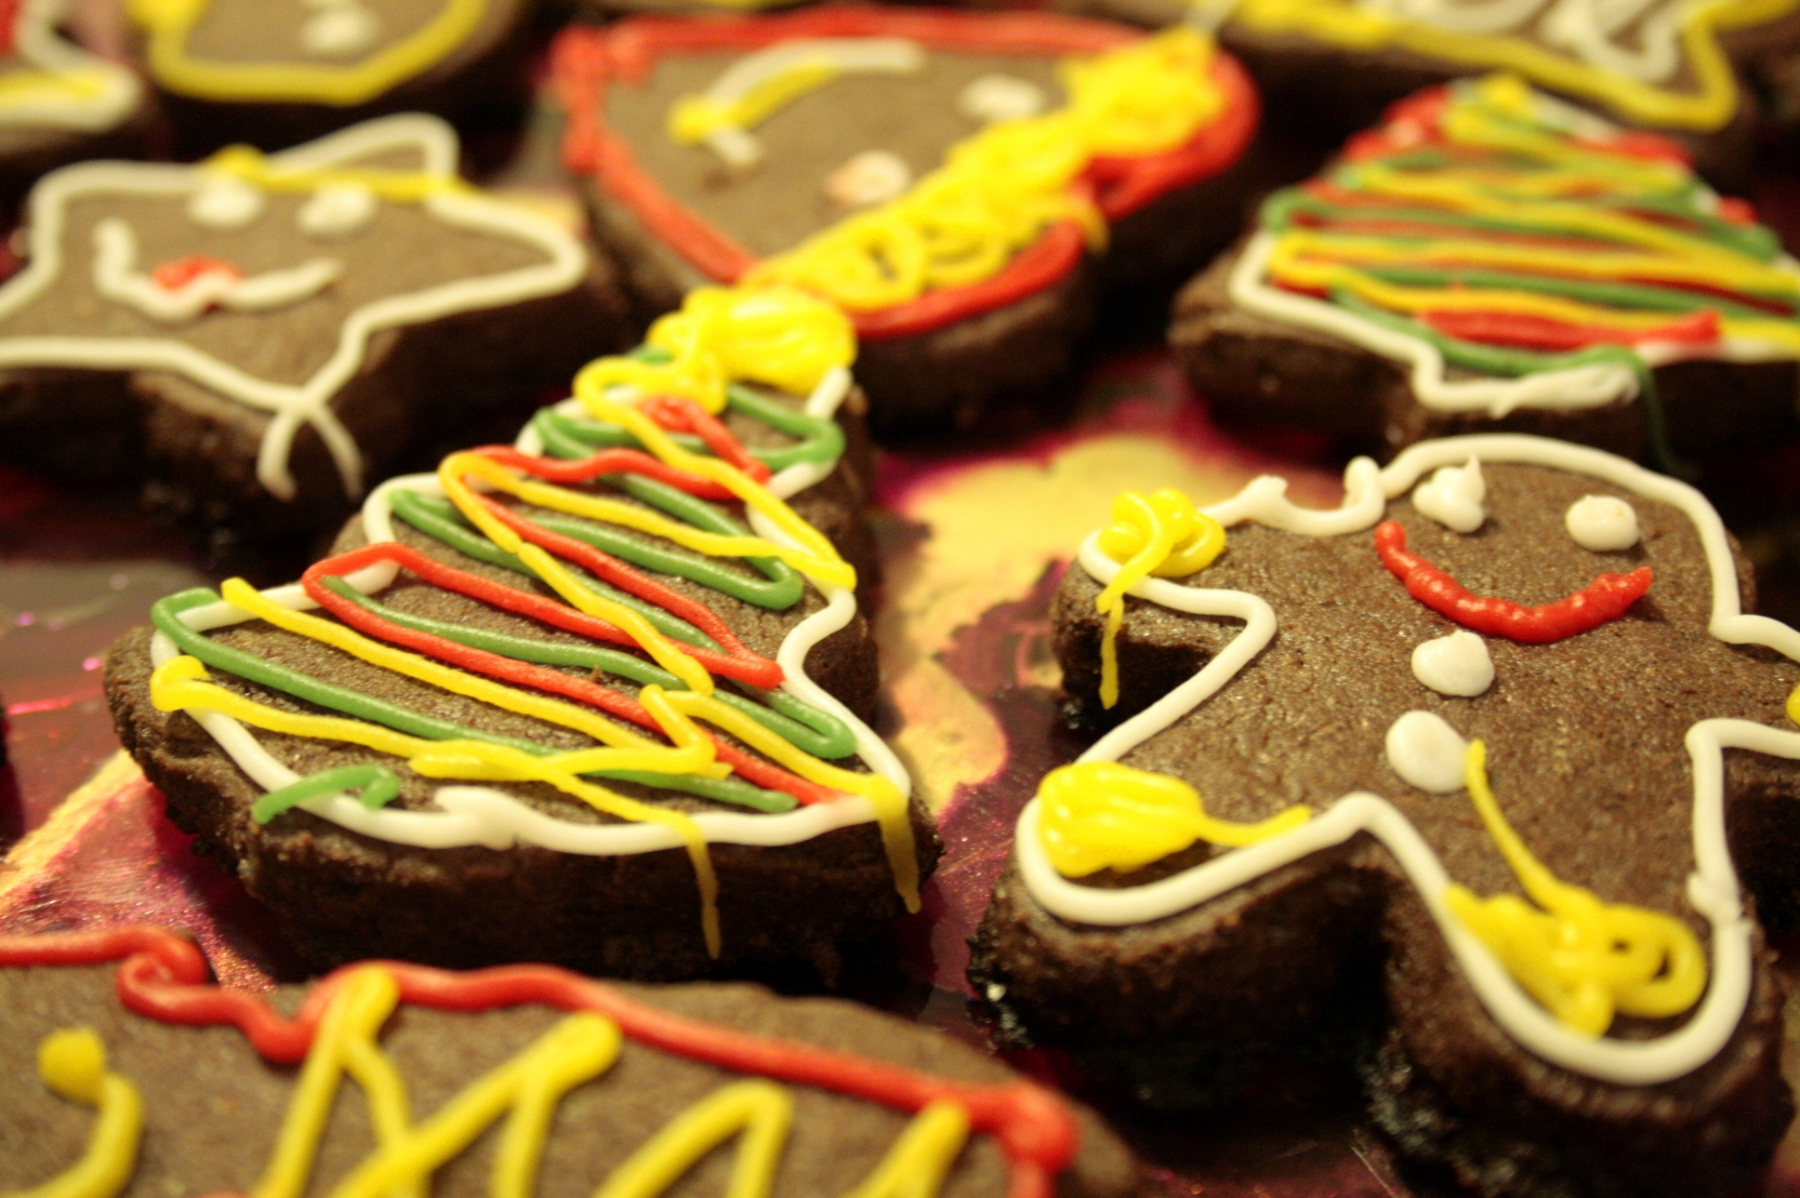 MG_4508-Icing-on-a-gingerbread-man